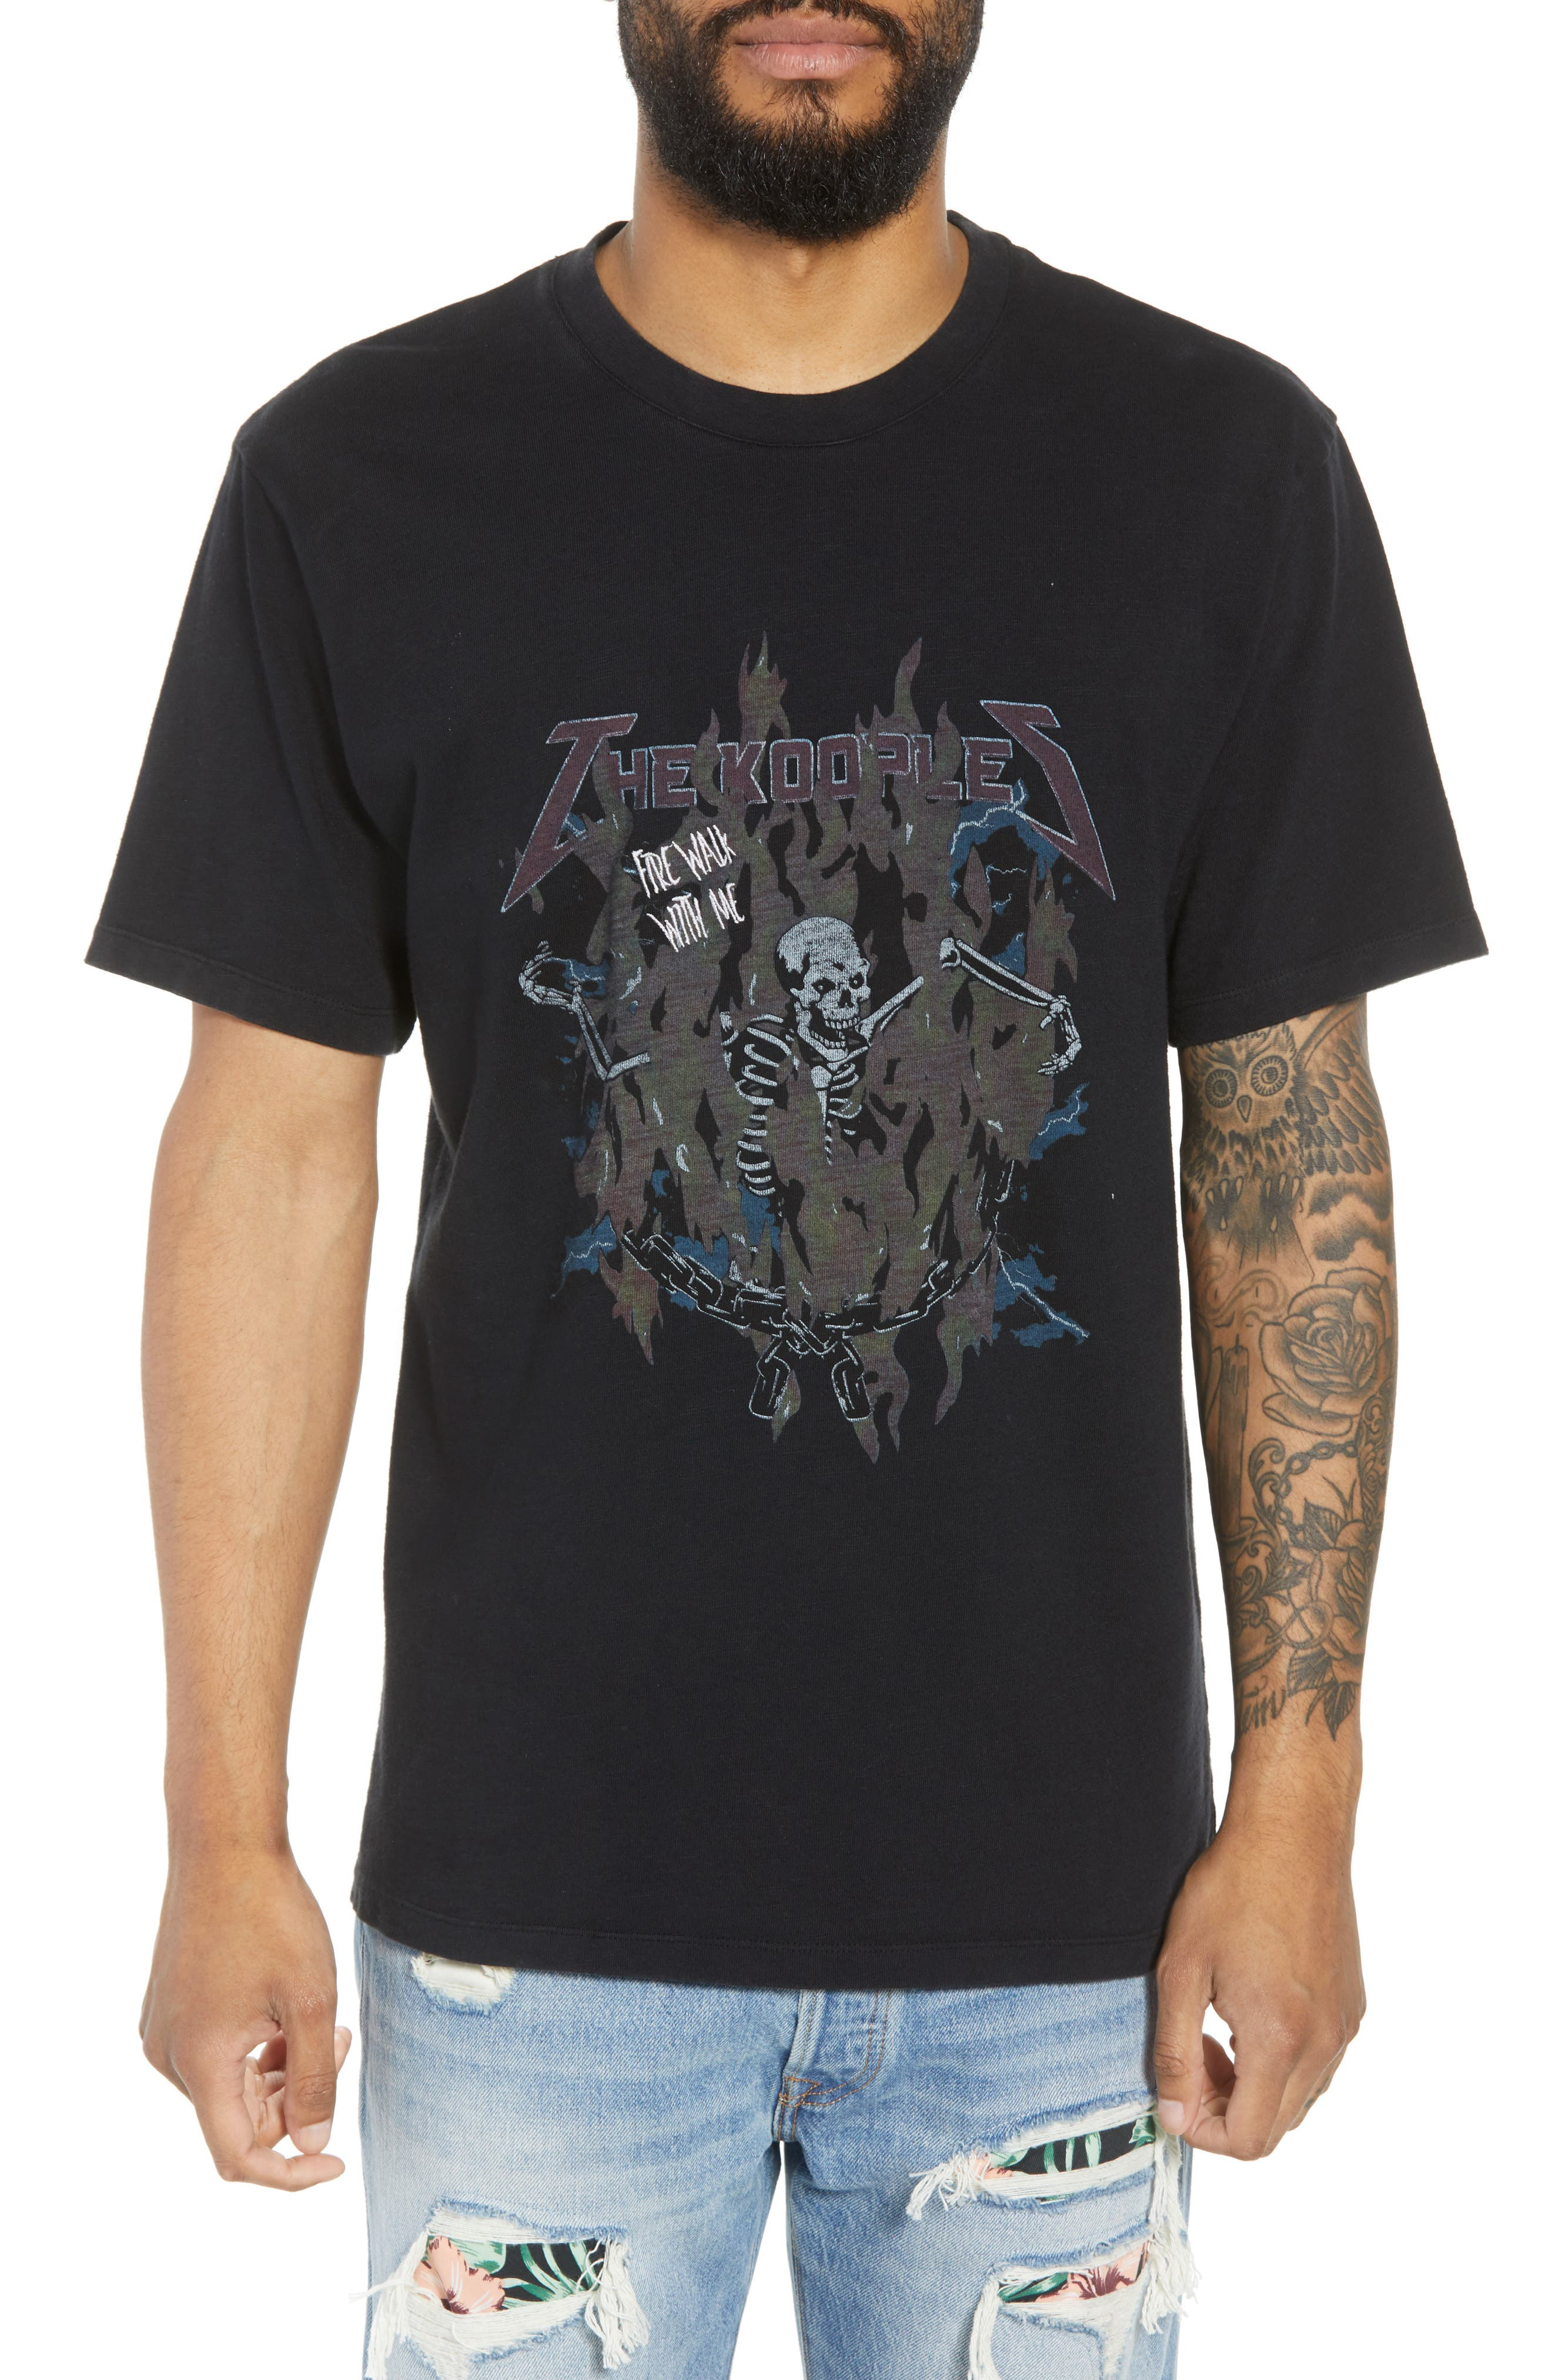 THE KOOPLES FIRE WALK WITH ME GRAPHIC T-SHIRT